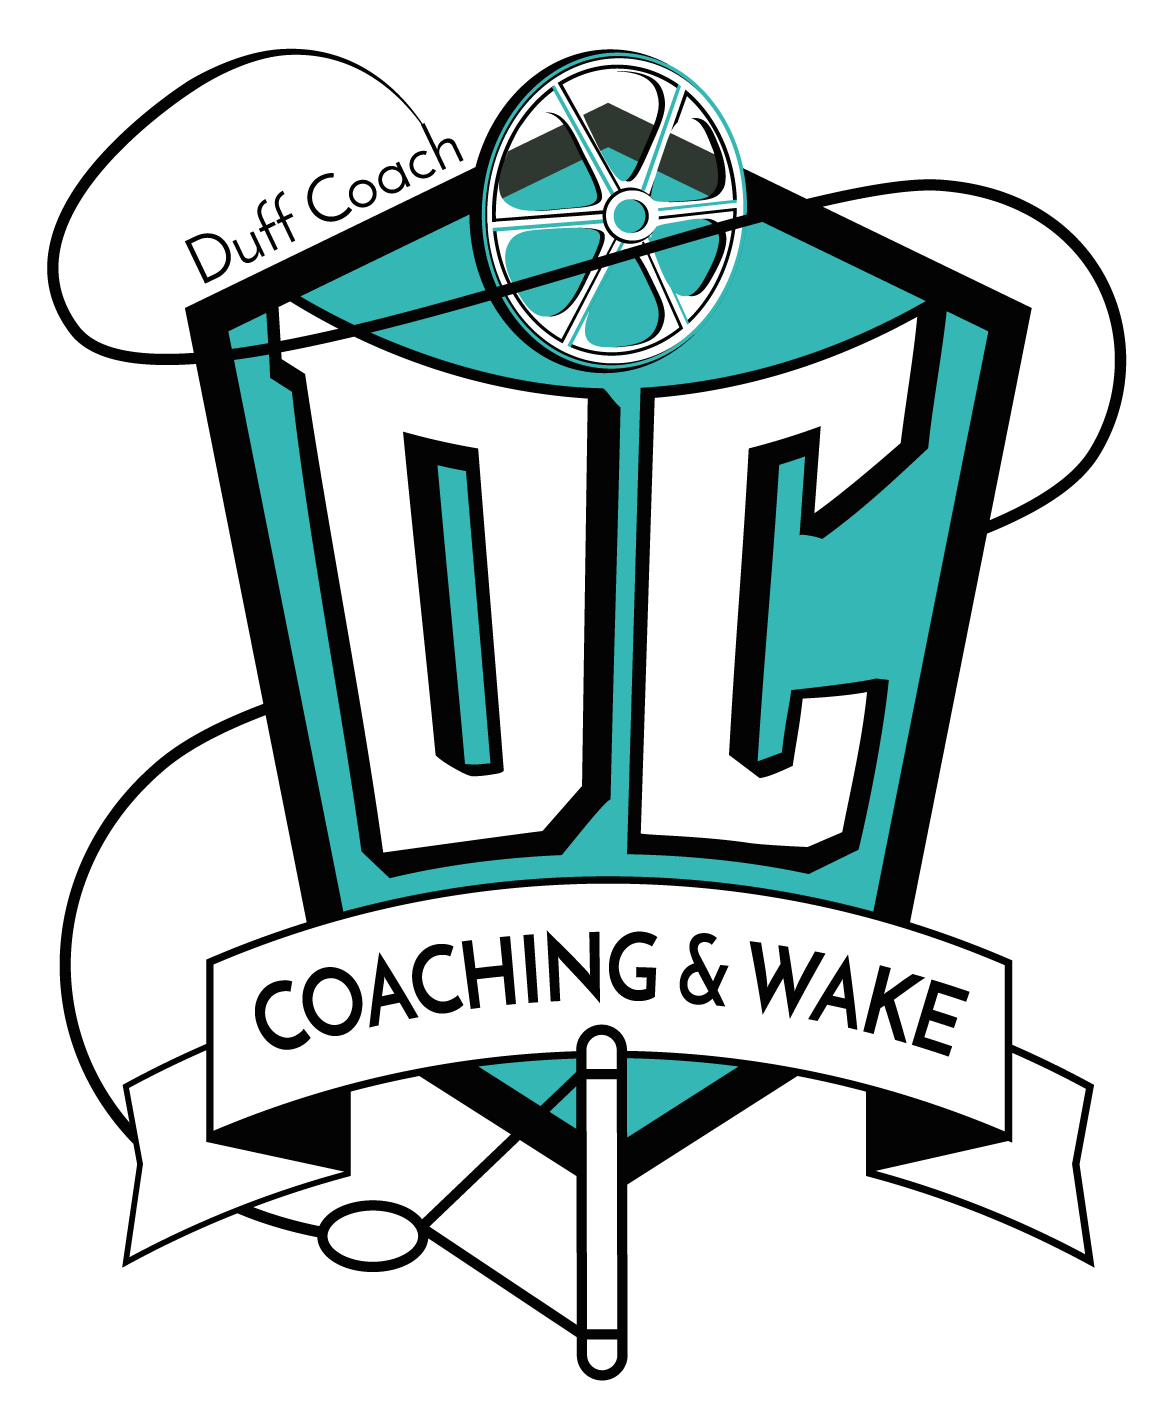 dc wakecoach